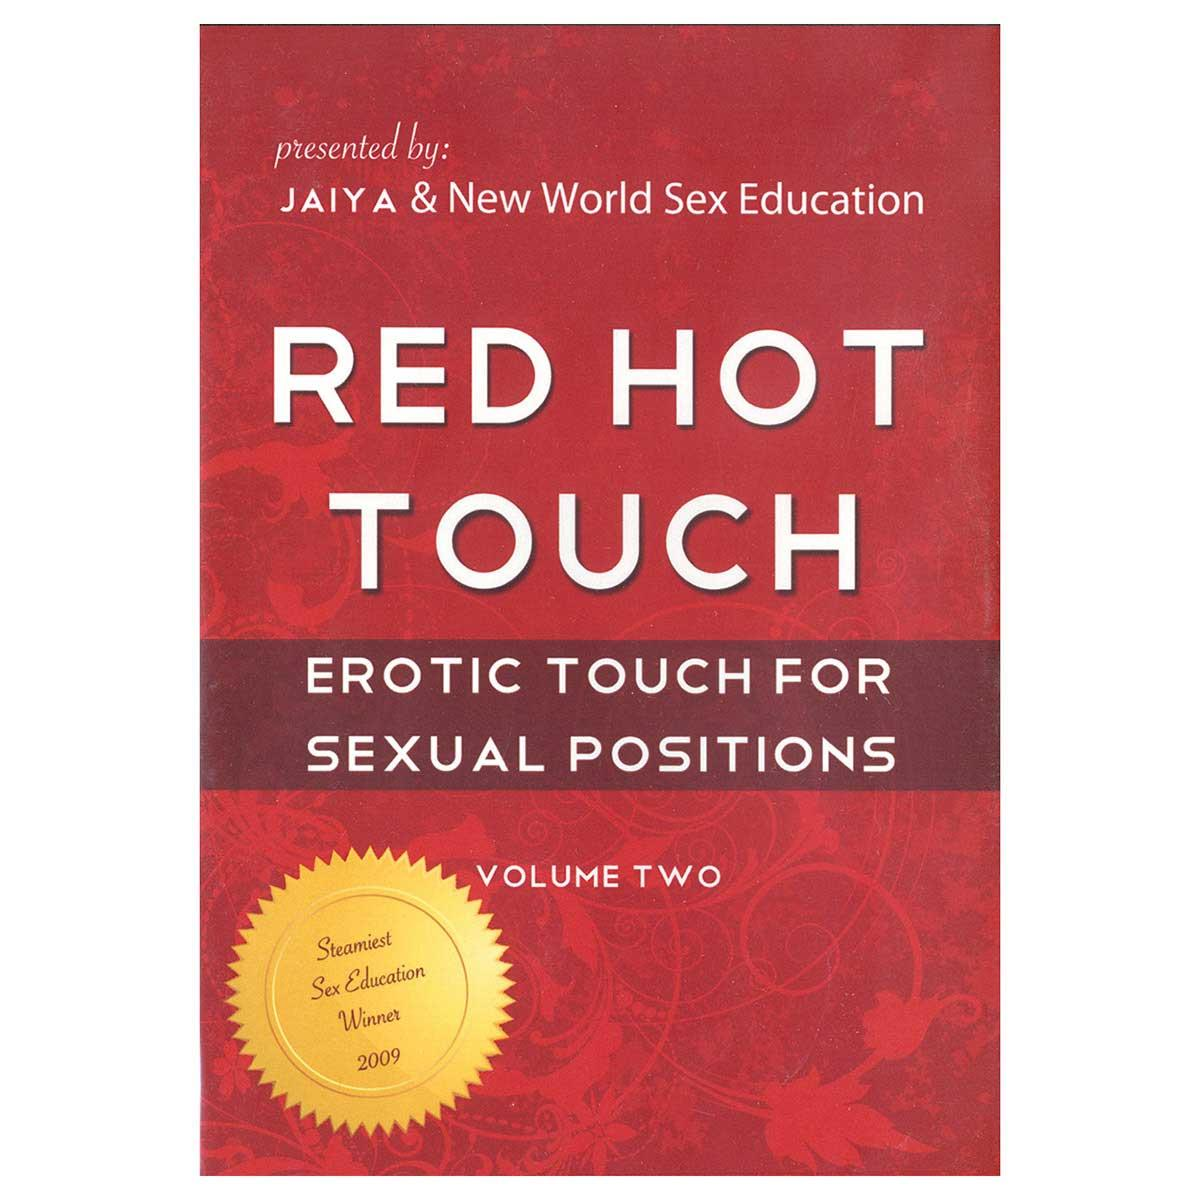 Red Hot Touch: Erotic Touch for Sexual Positions DVD